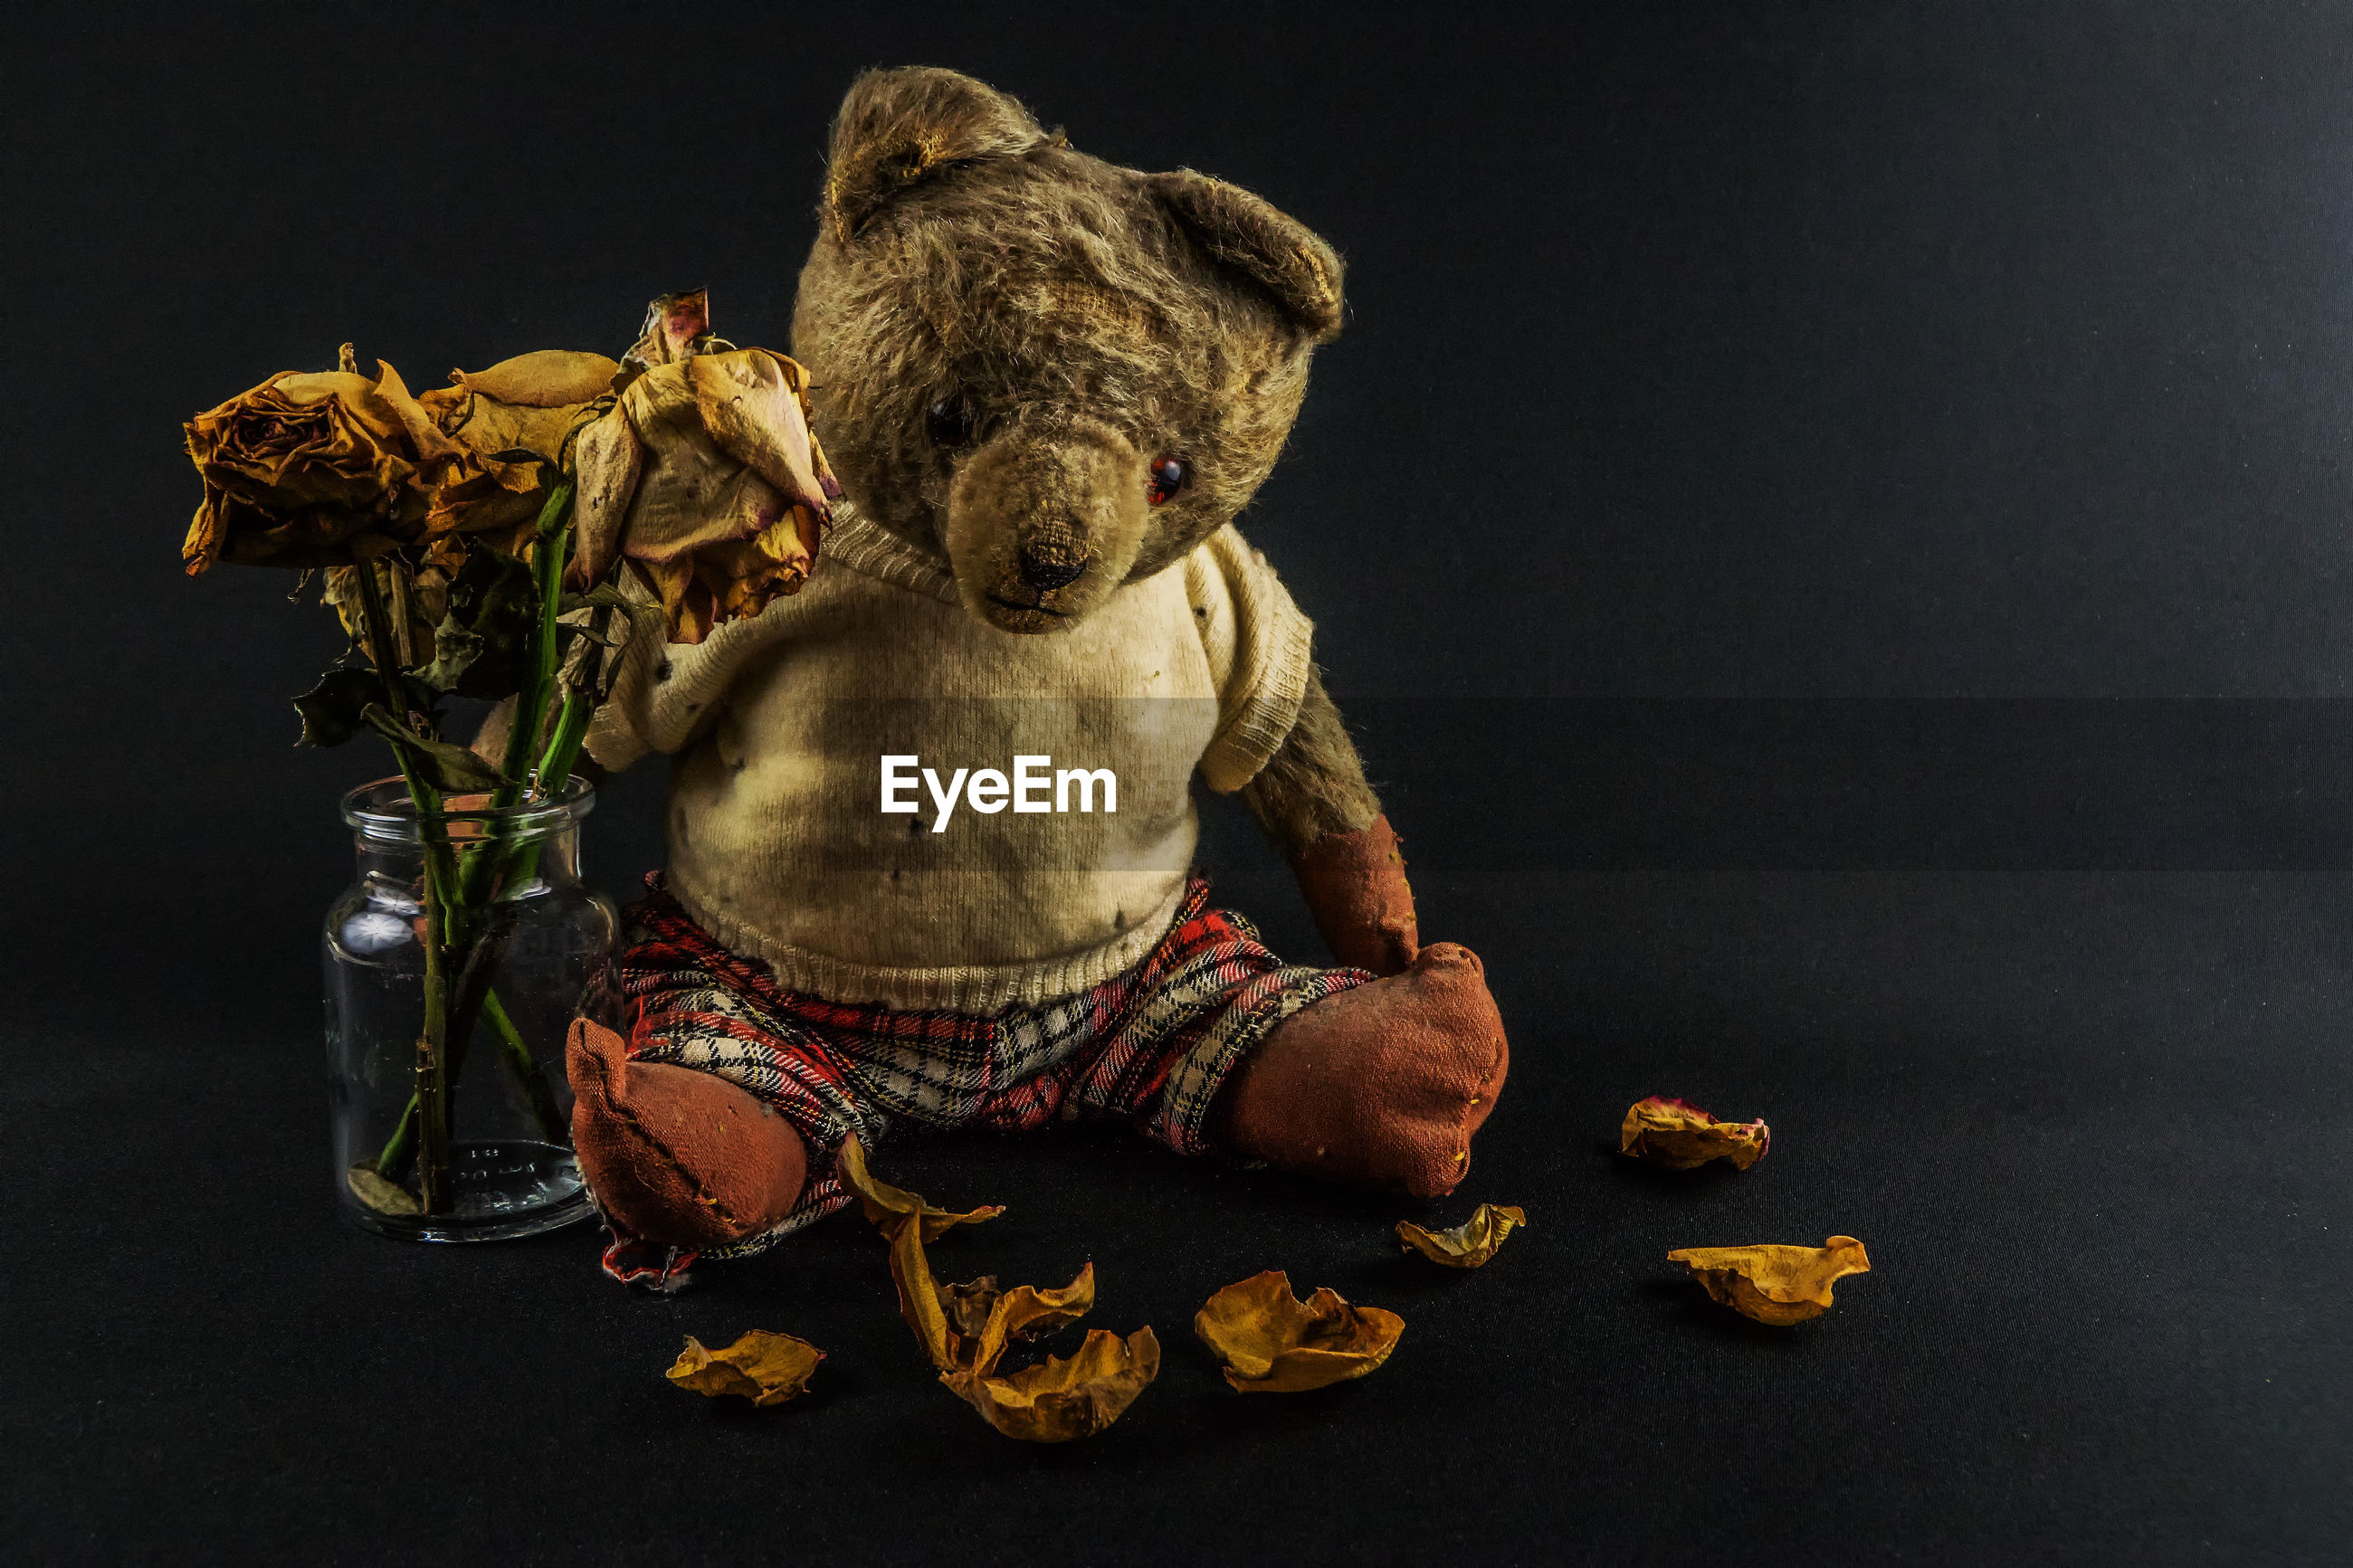 Close-up of stuffed toy with wilted flowers against black background